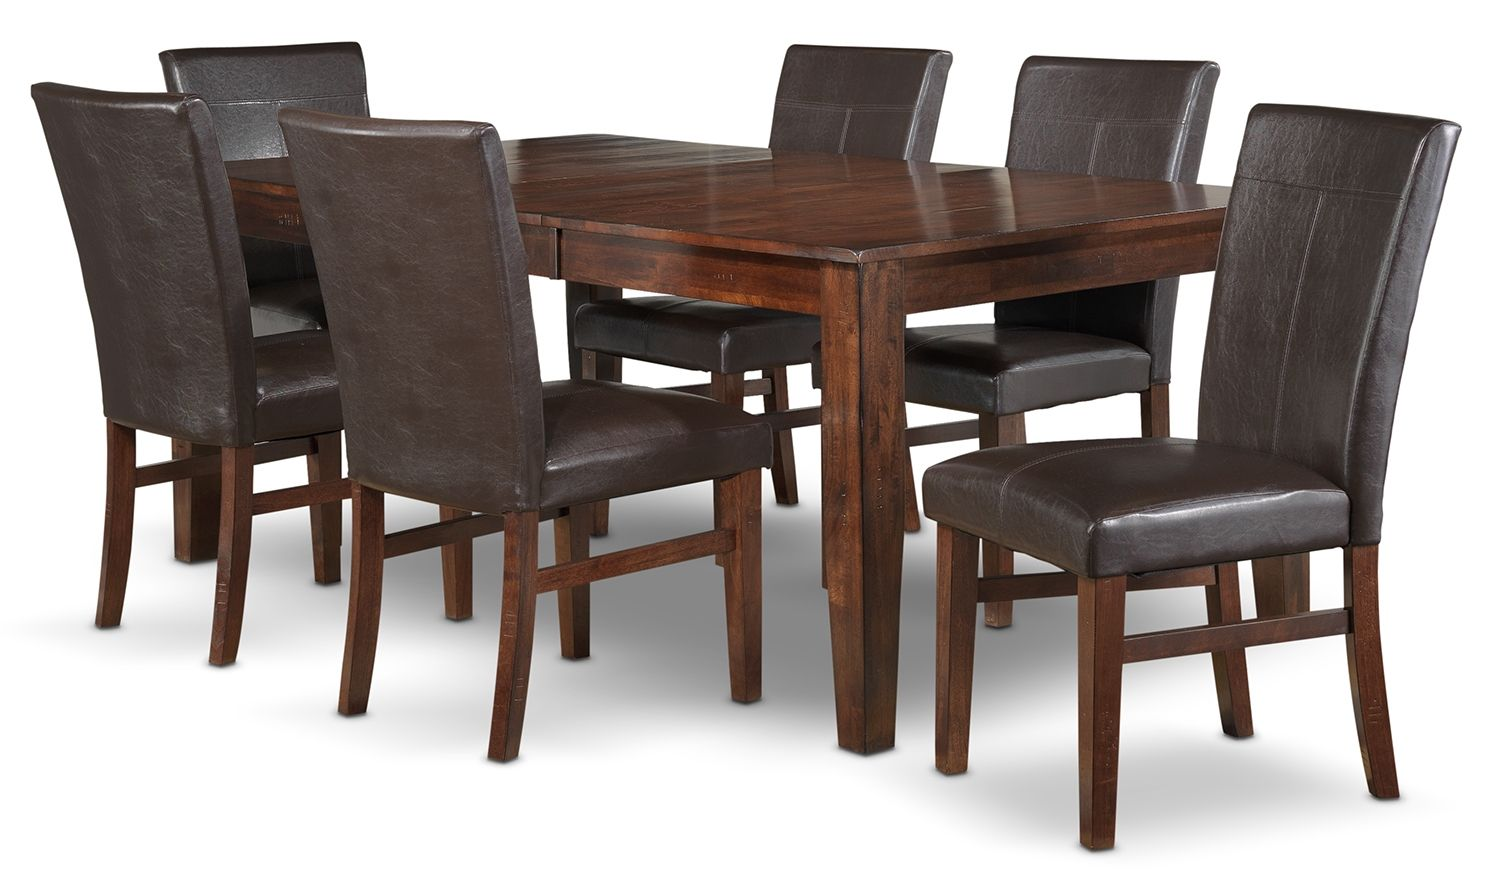 Dining room furniture kona 7 pc dining room package kims house elect to receive big savings on leons dining room packages choose from a large selection of dining room packages and dinettes for your home or condo in workwithnaturefo